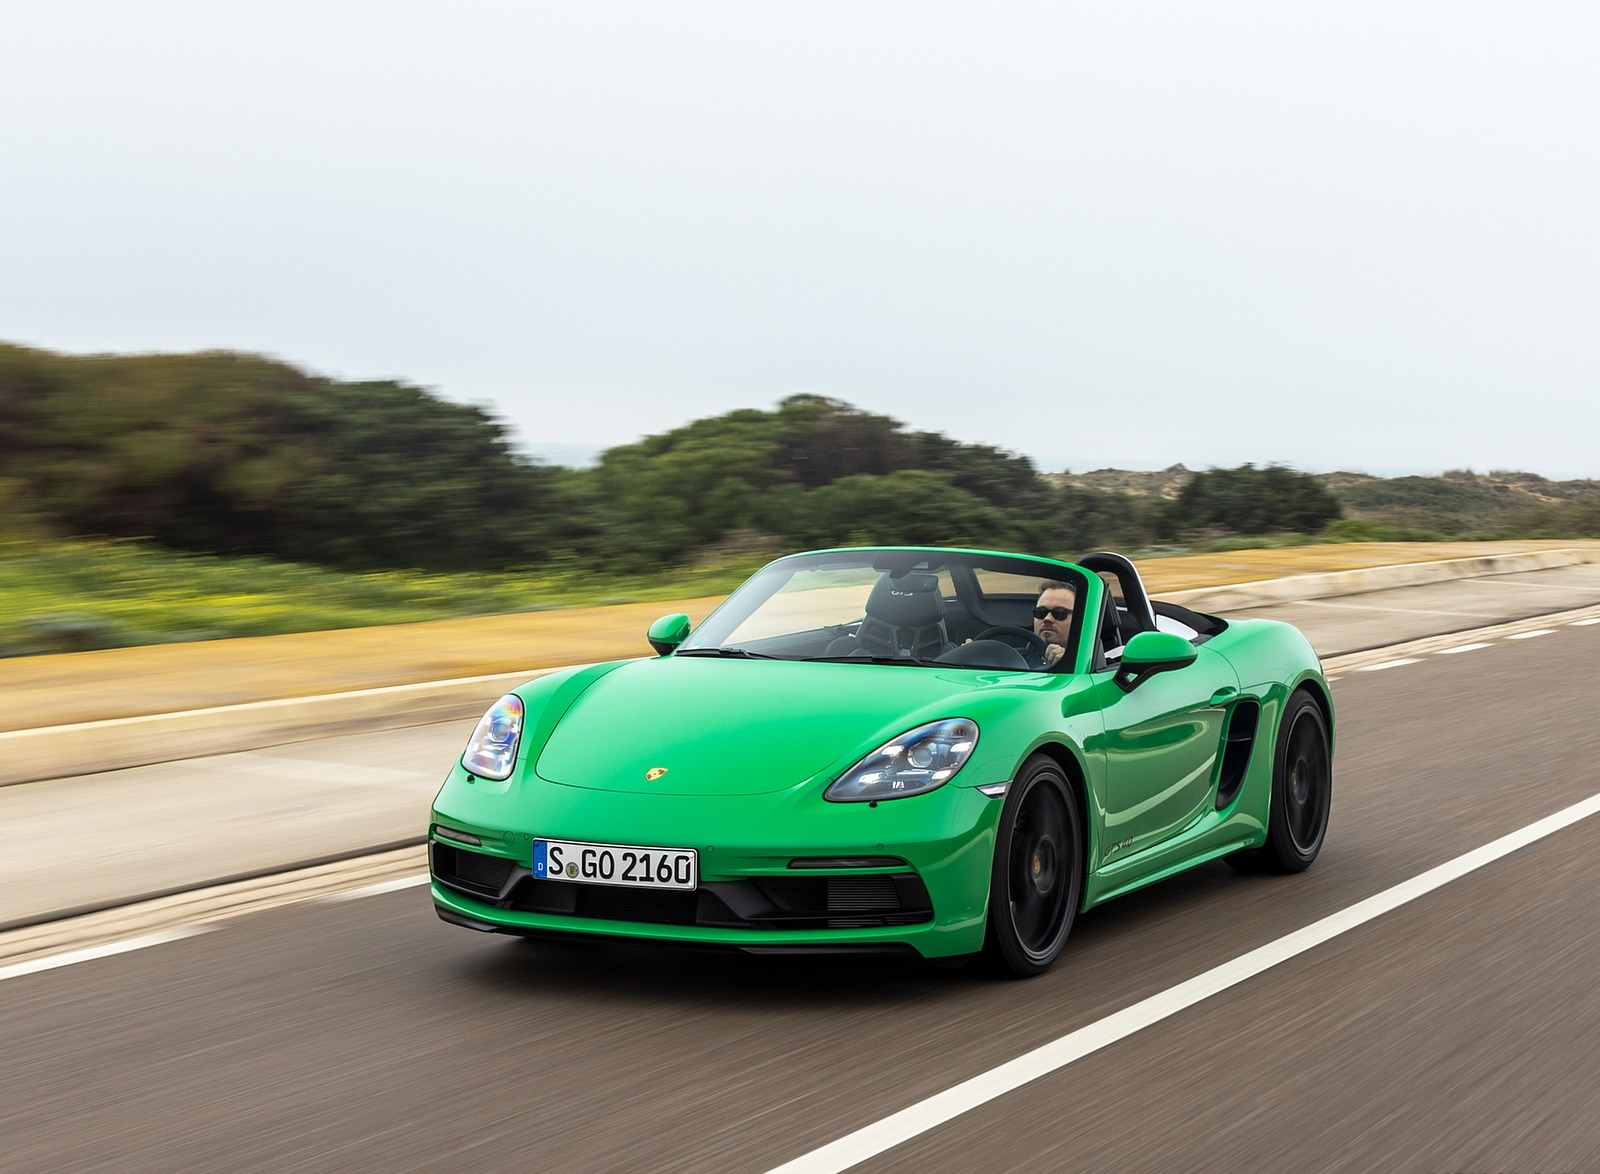 2020 Porsche 718 Boxster GTS 4.0 (Color: Phyton Green) Front Three-Quarter Wallpapers (6)